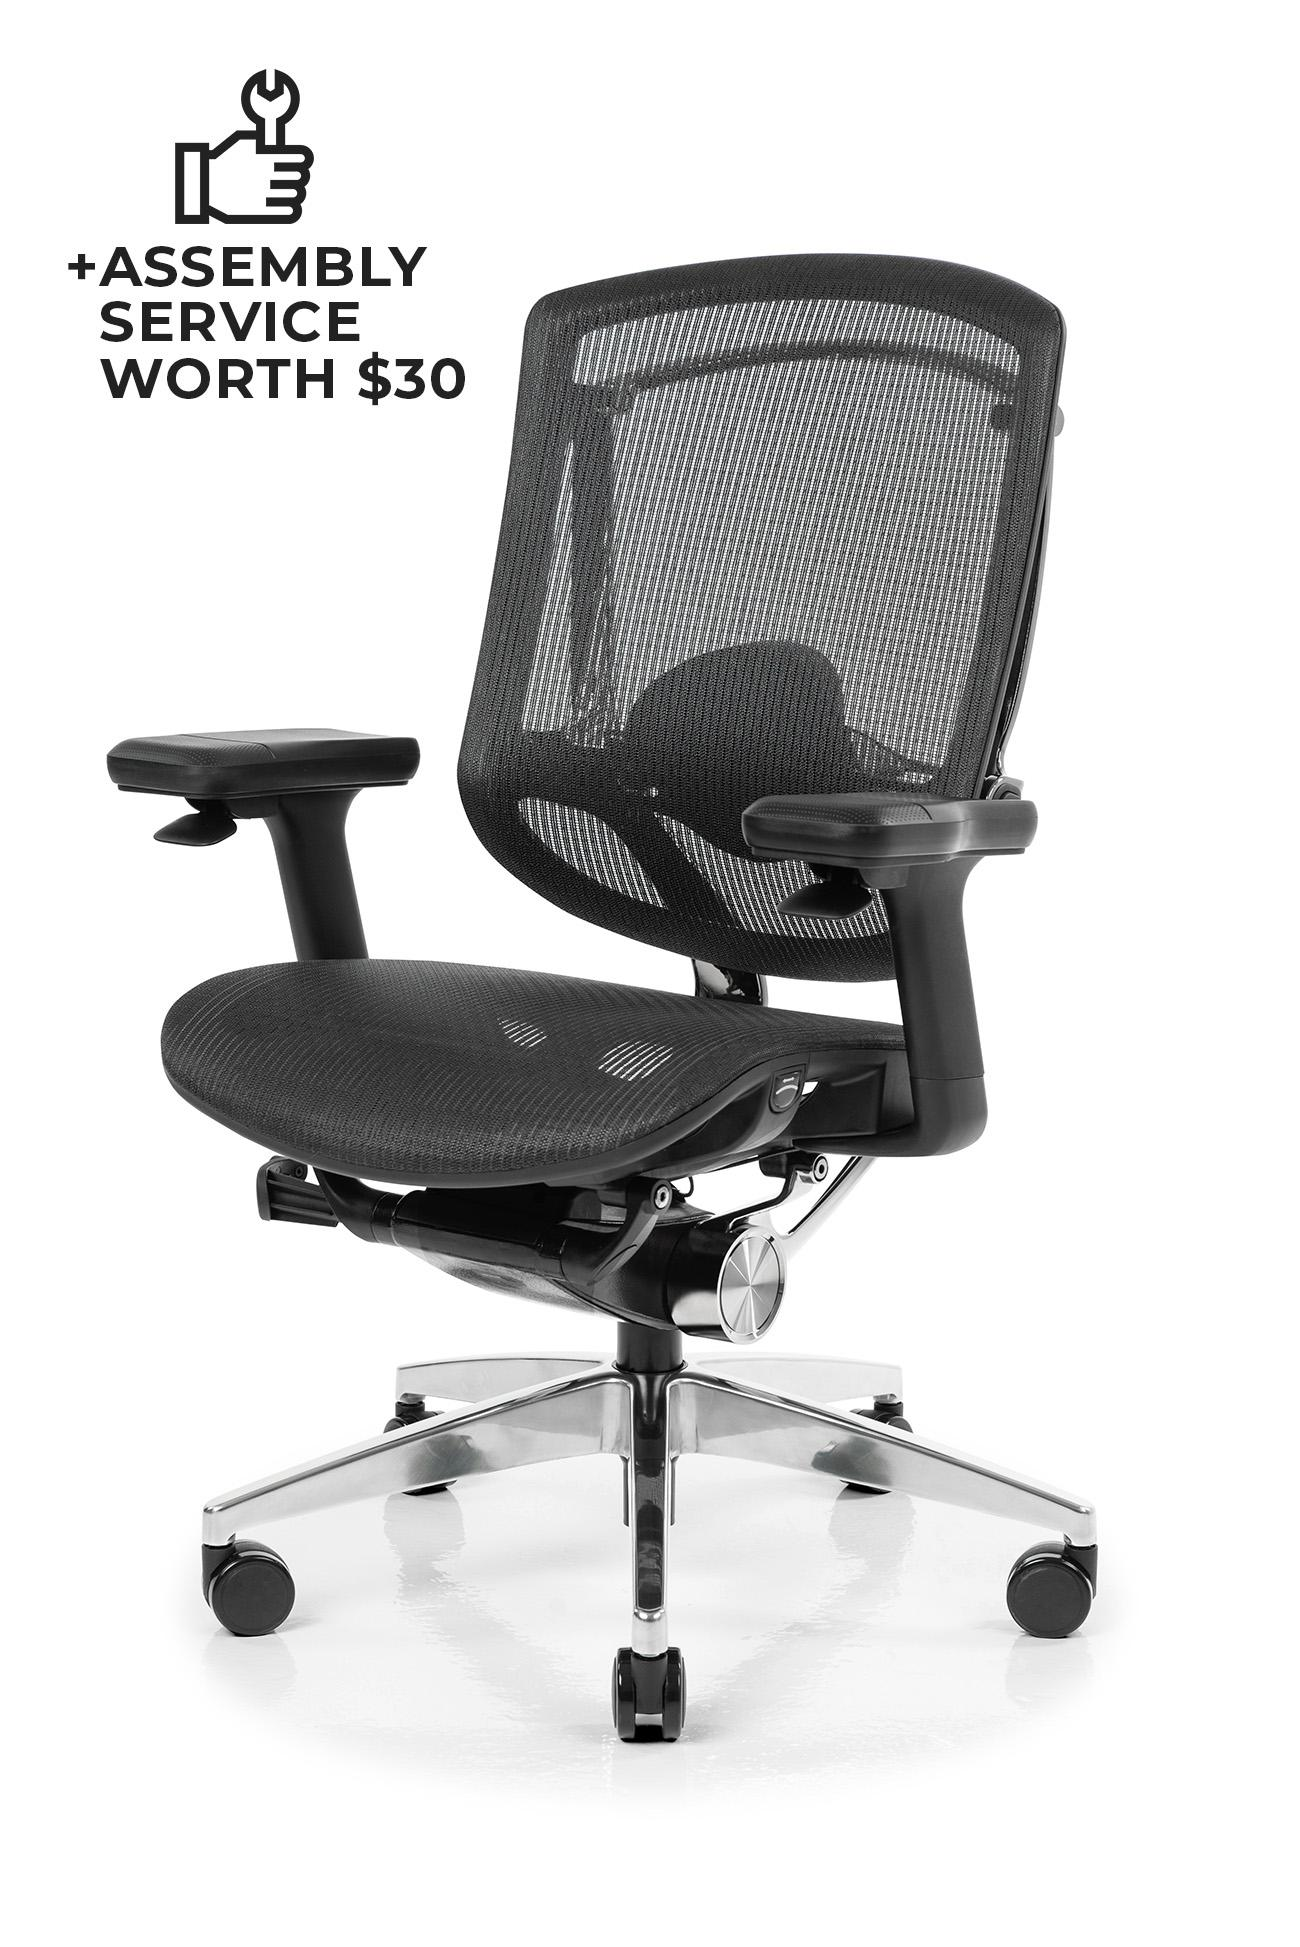 NeueChair™  Ergonomic Office Computer Chair (Subsidiary of Secretlab)